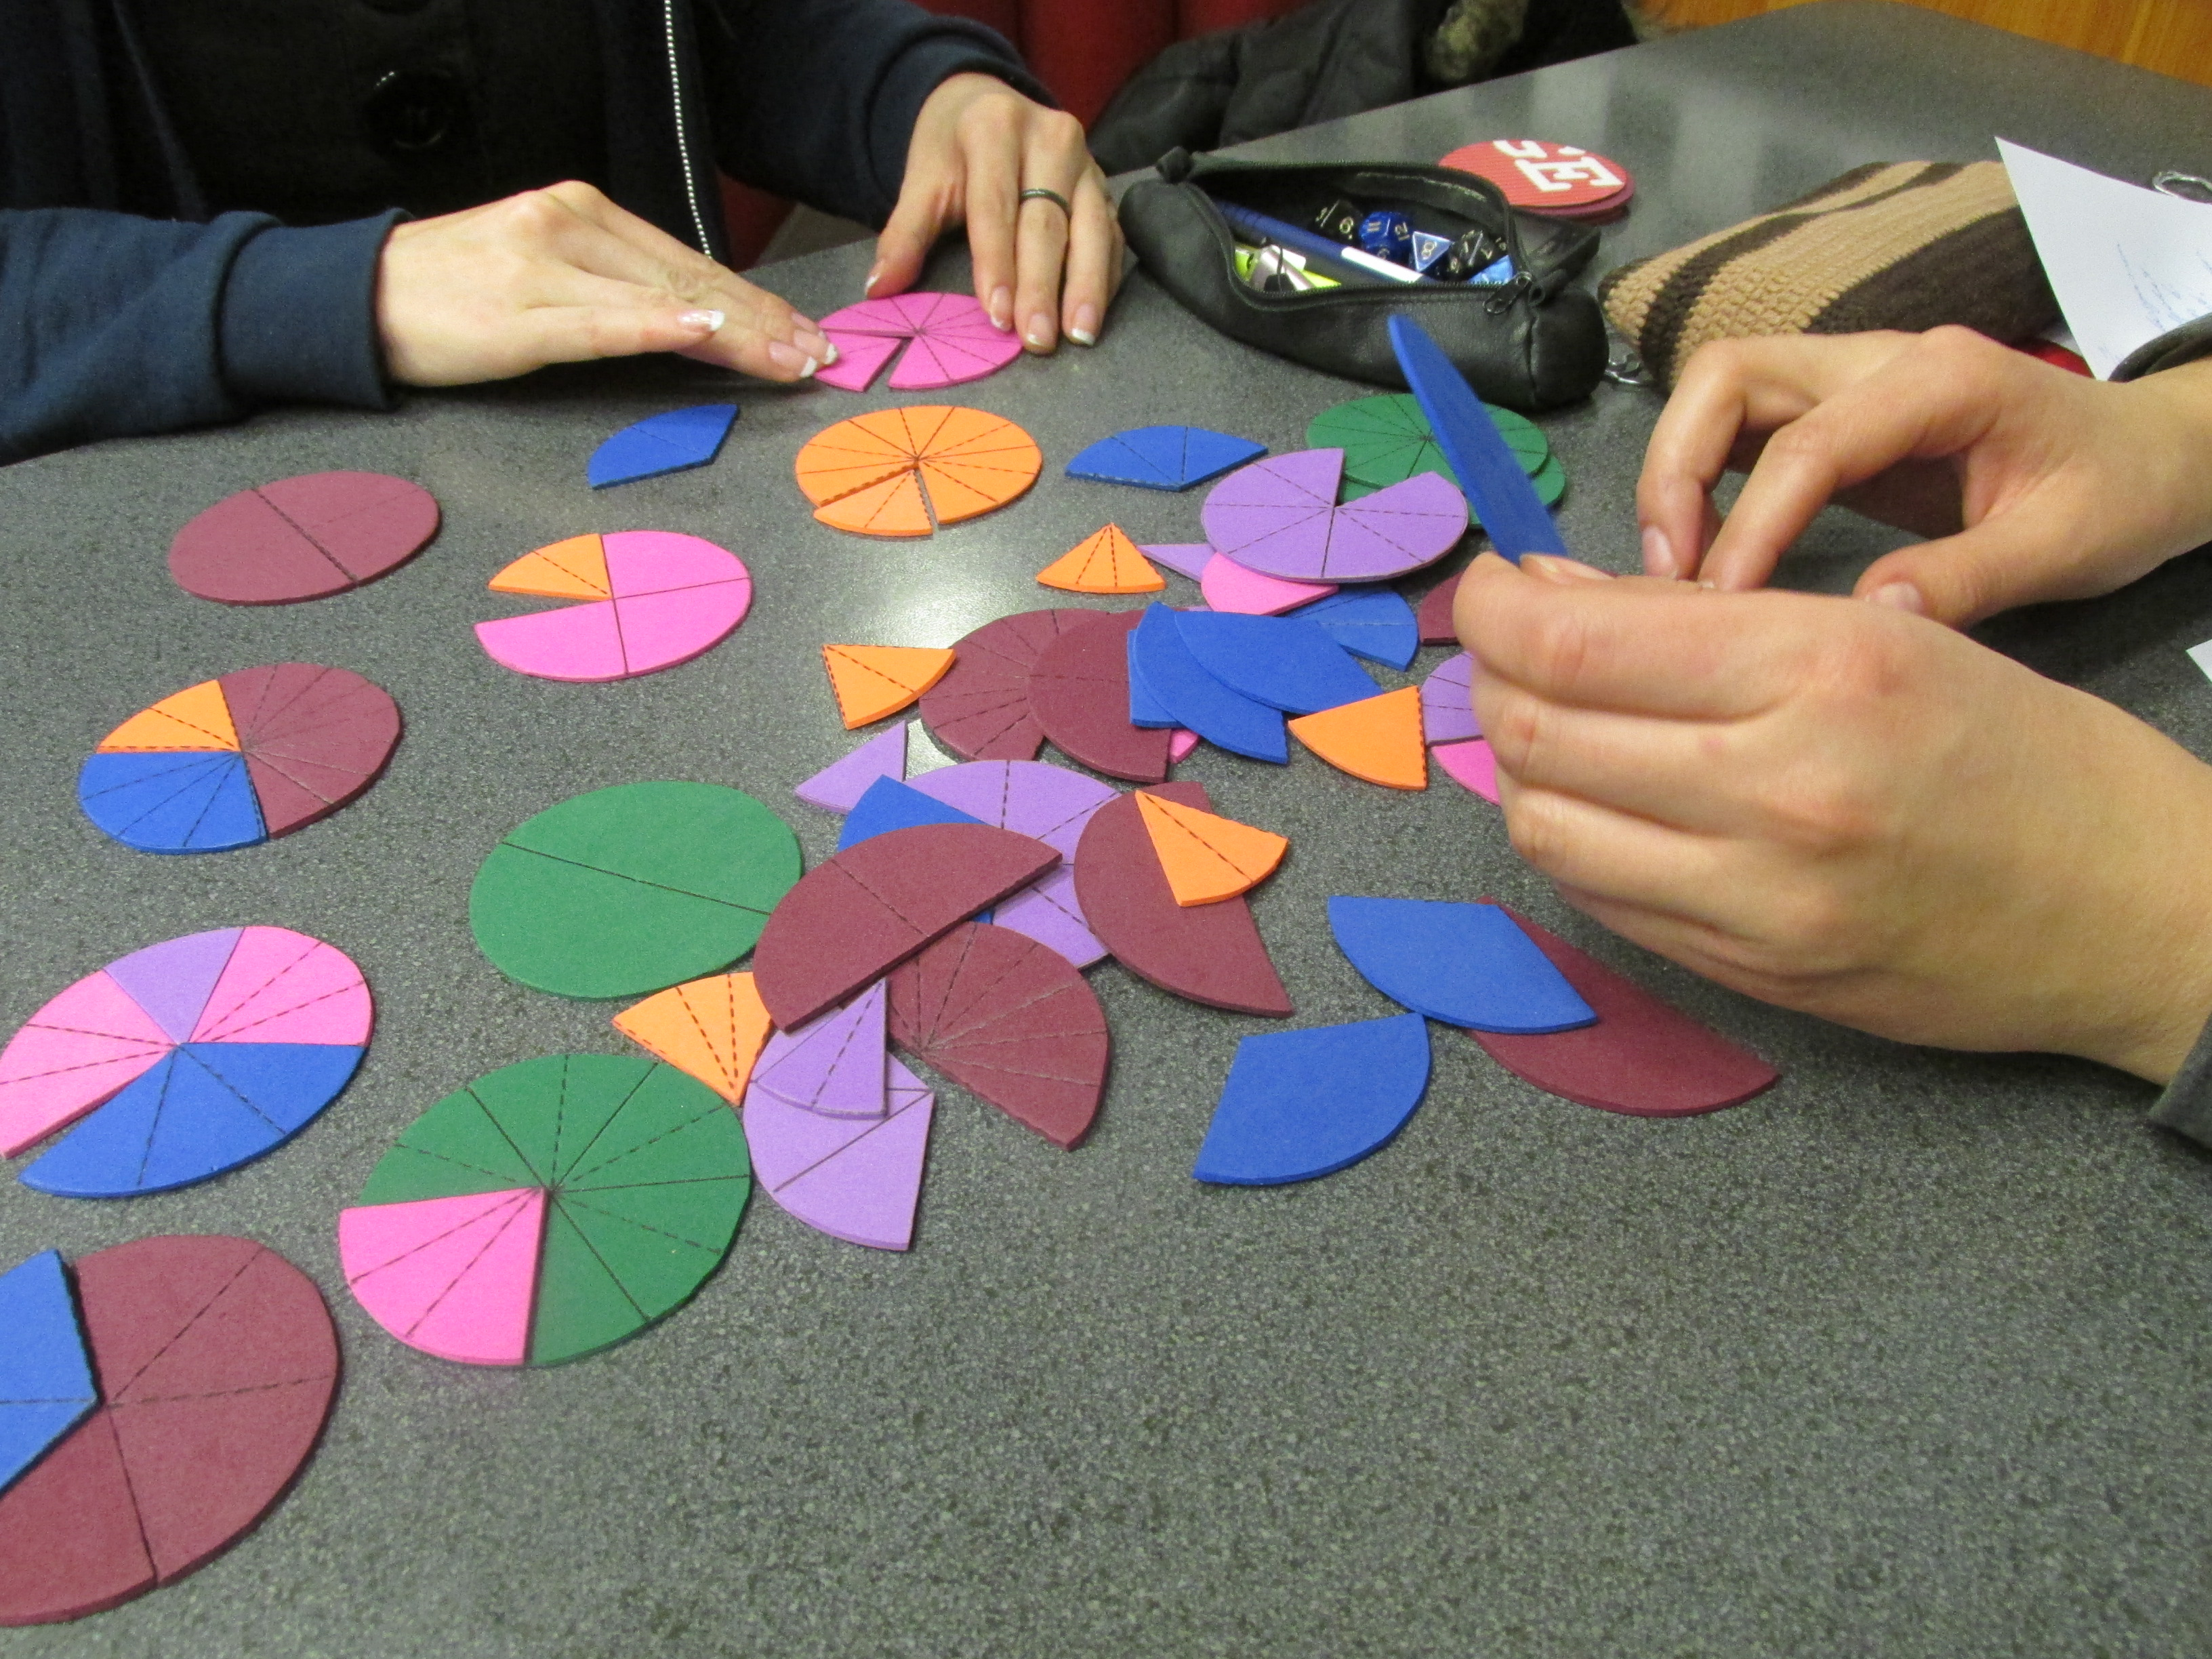 Fraction To Mm Chart: Foam paper fraction pies.JPG - Wikimedia Commons,Chart